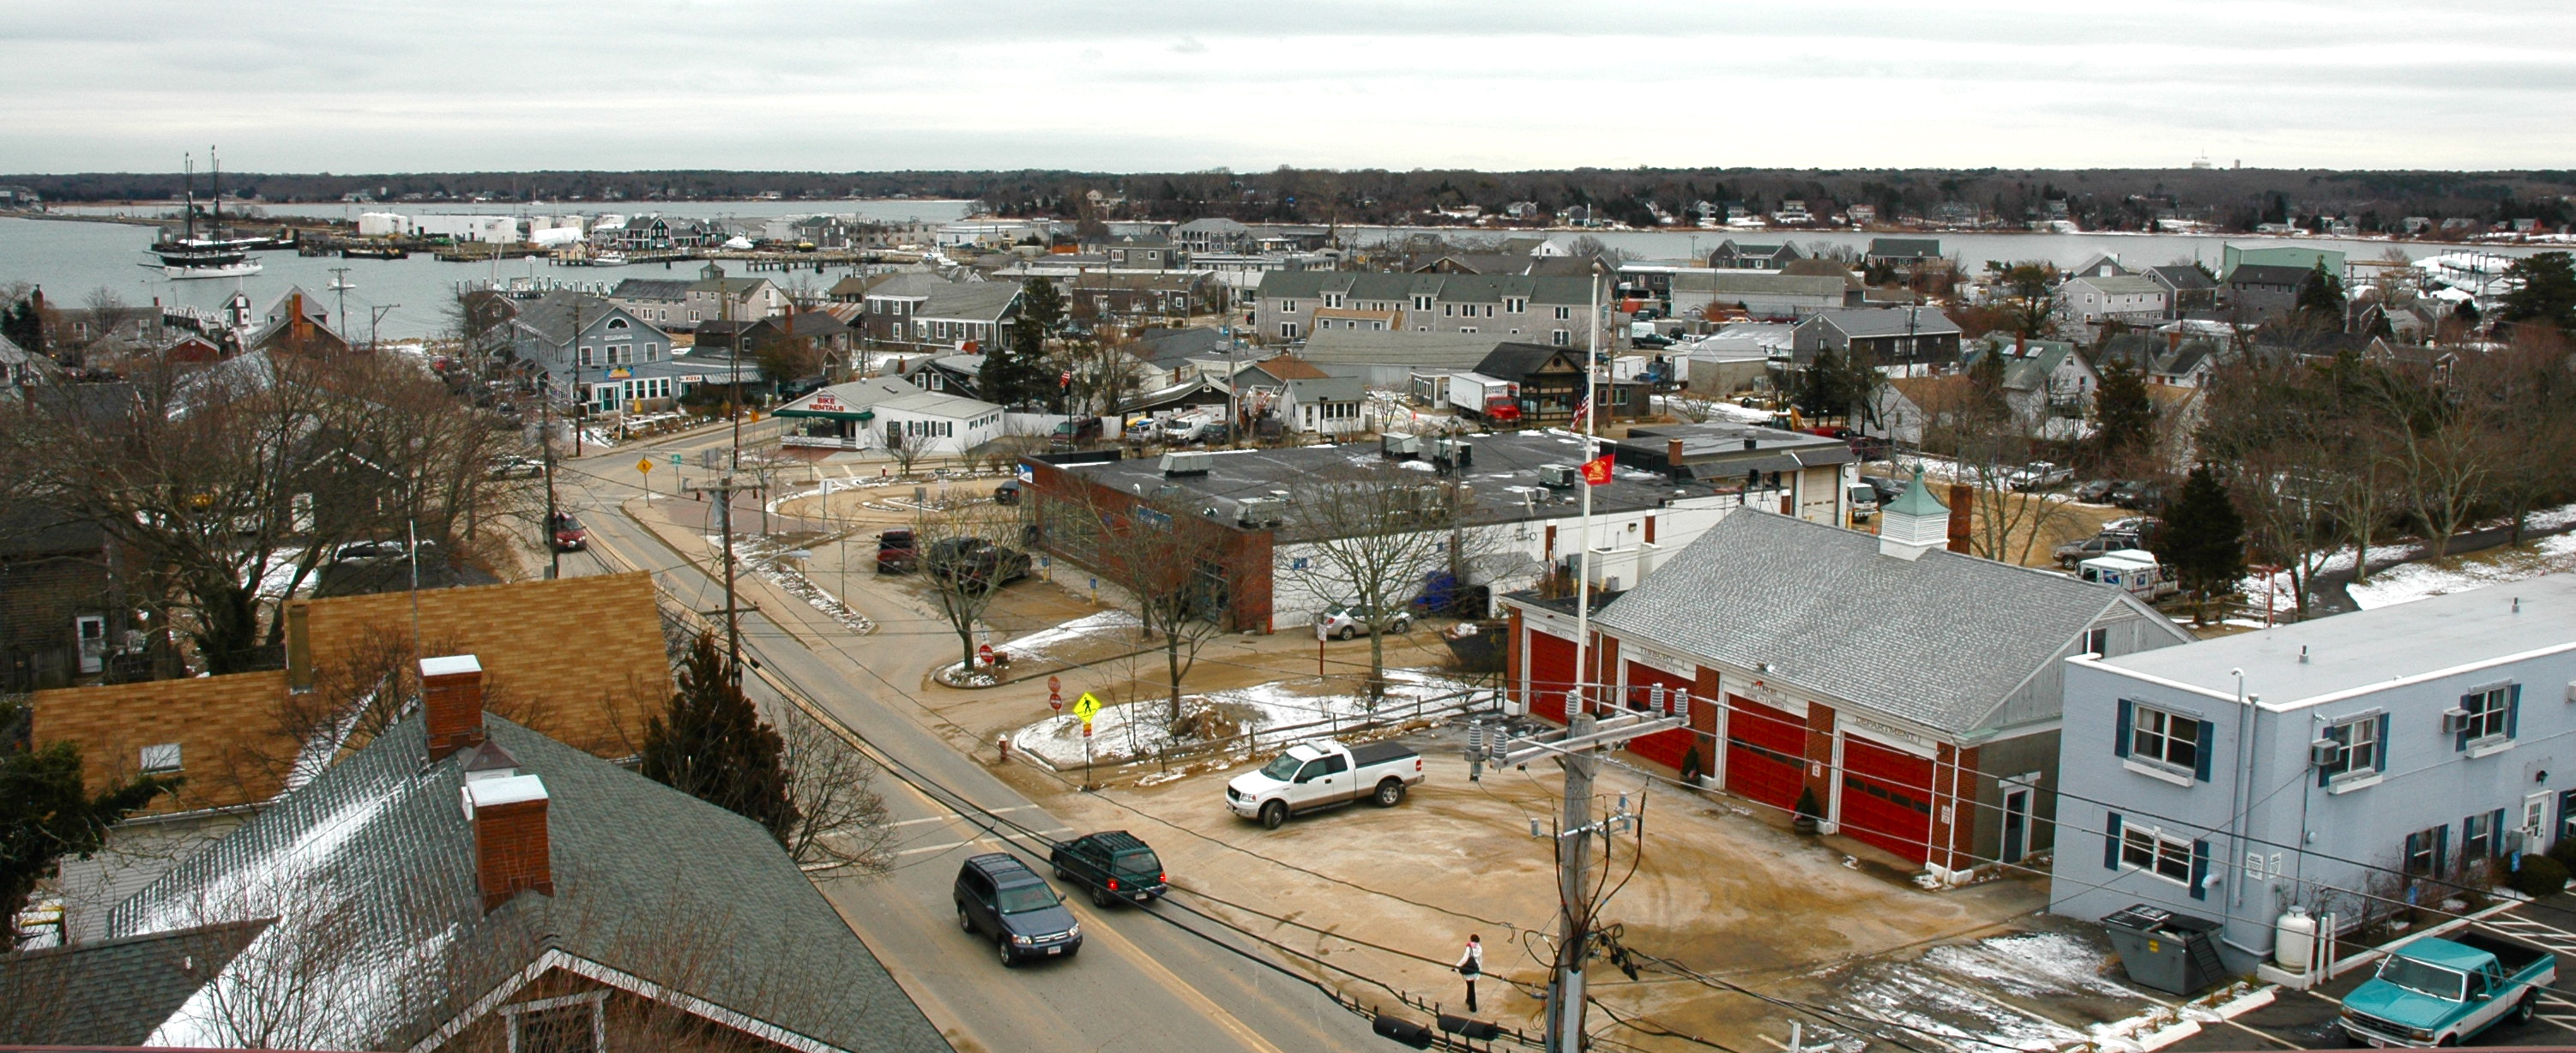 Vineyard Haven in January, where you will dock when you come to Chilifest.